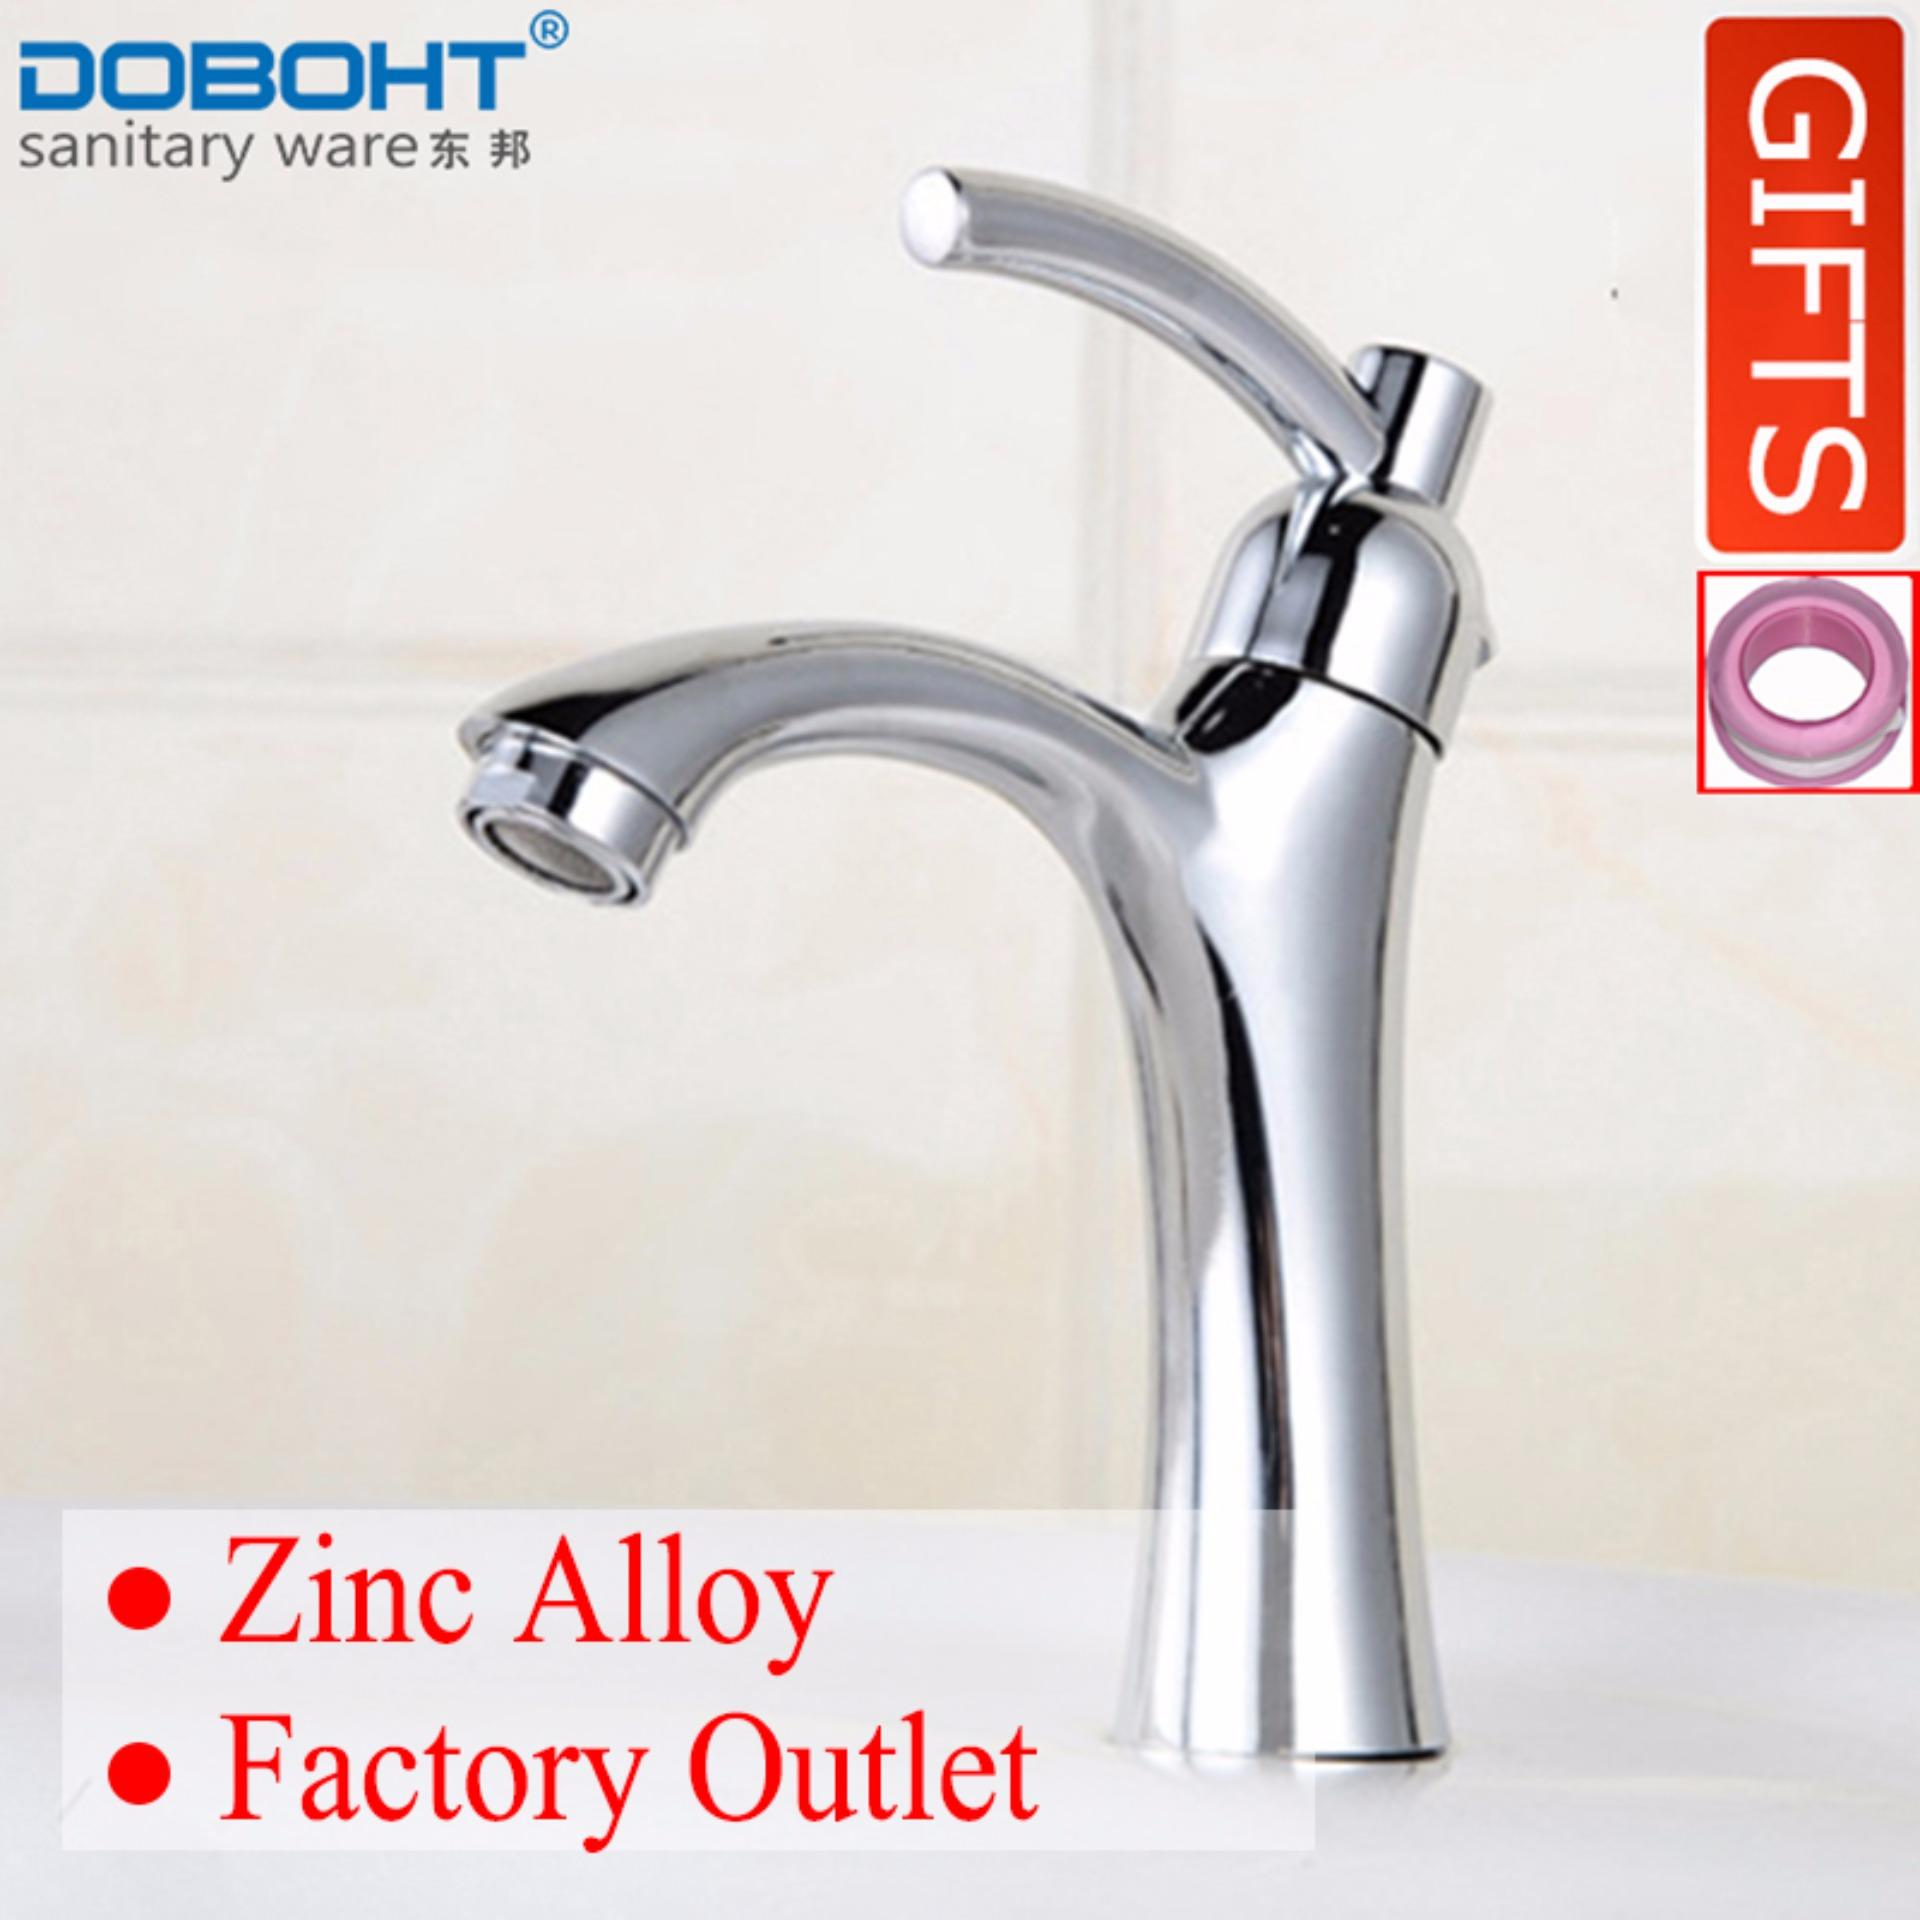 Review Doboht Zinc Alloy Bathroom Sink Basin Single Cold Tap Faucet Chrome Export Doboht On China